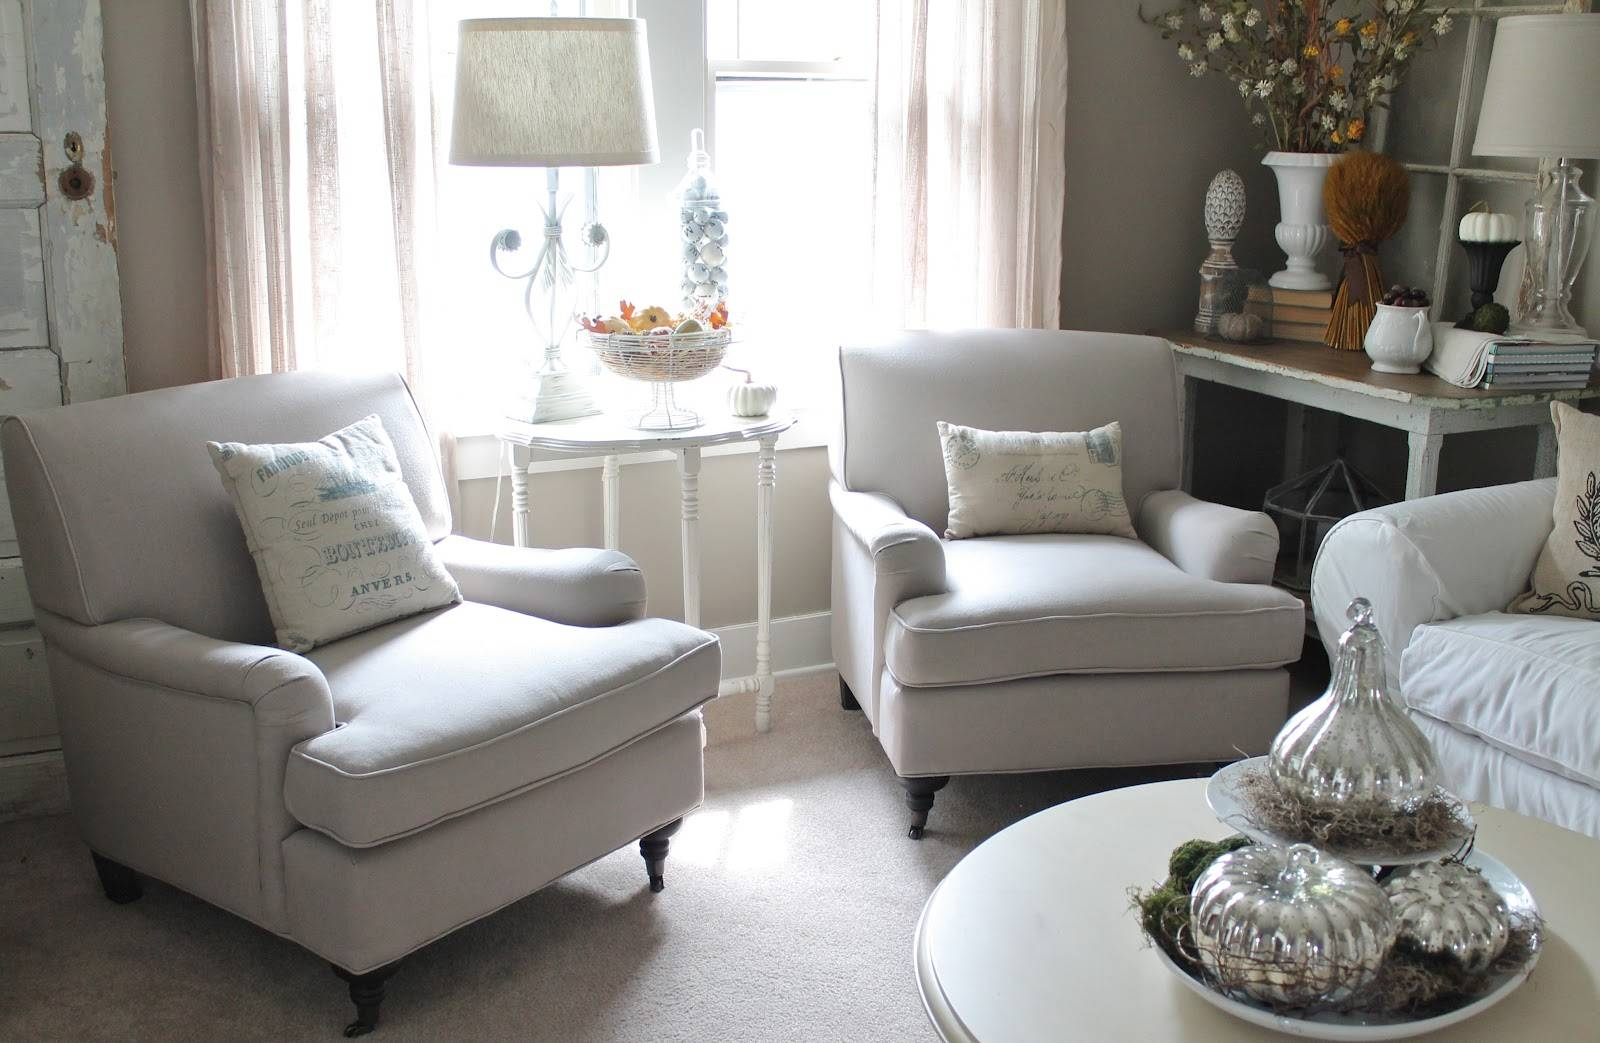 Arm Chairs Living Room | Home Design Ideas within Small Arm Chairs (Image 3 of 30)